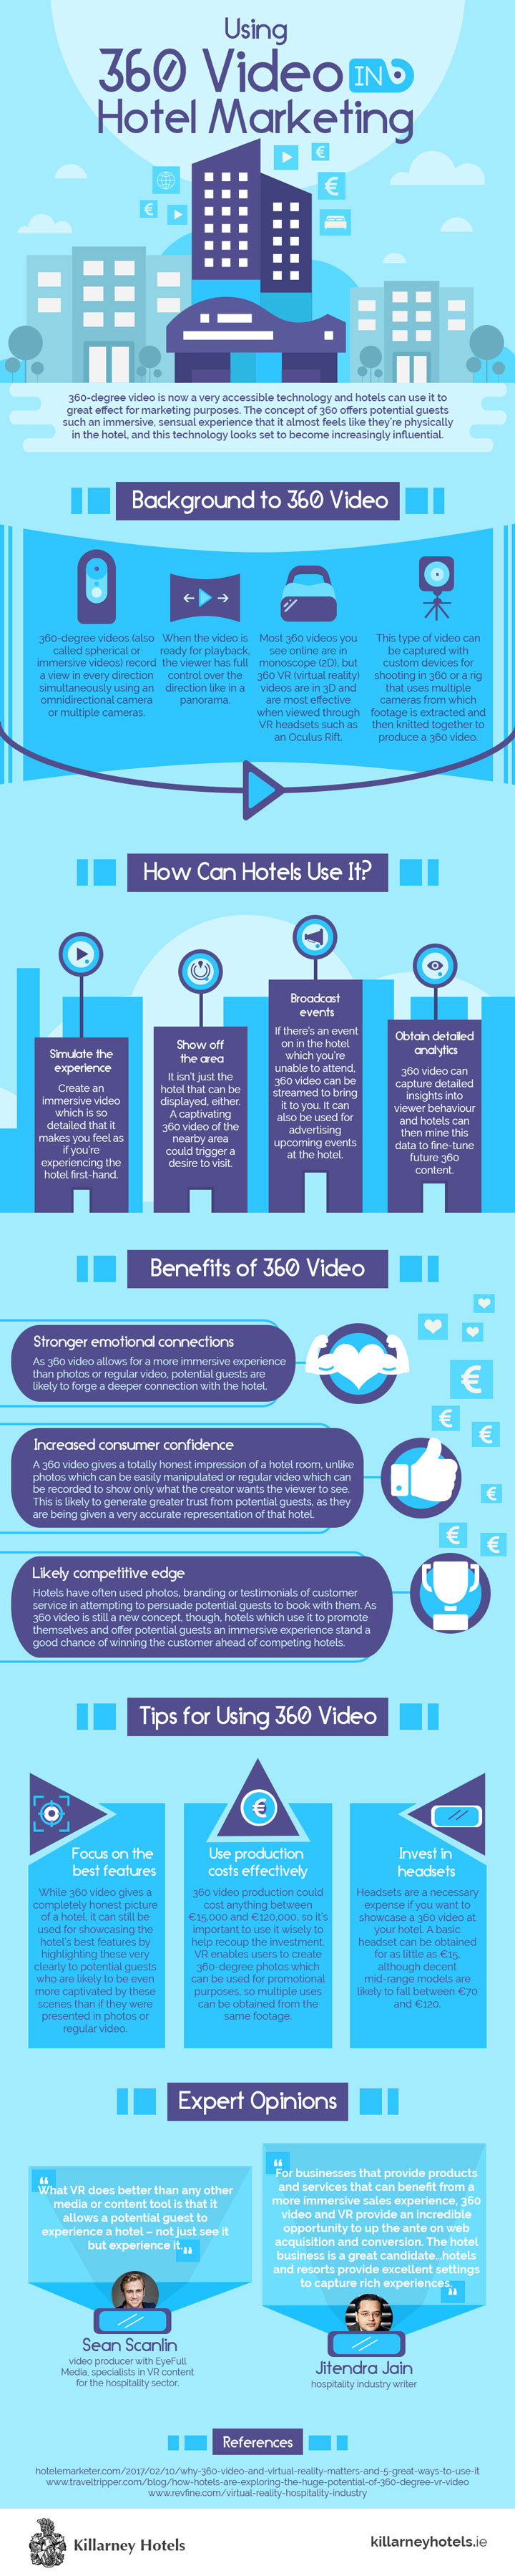 tips on using 360 video